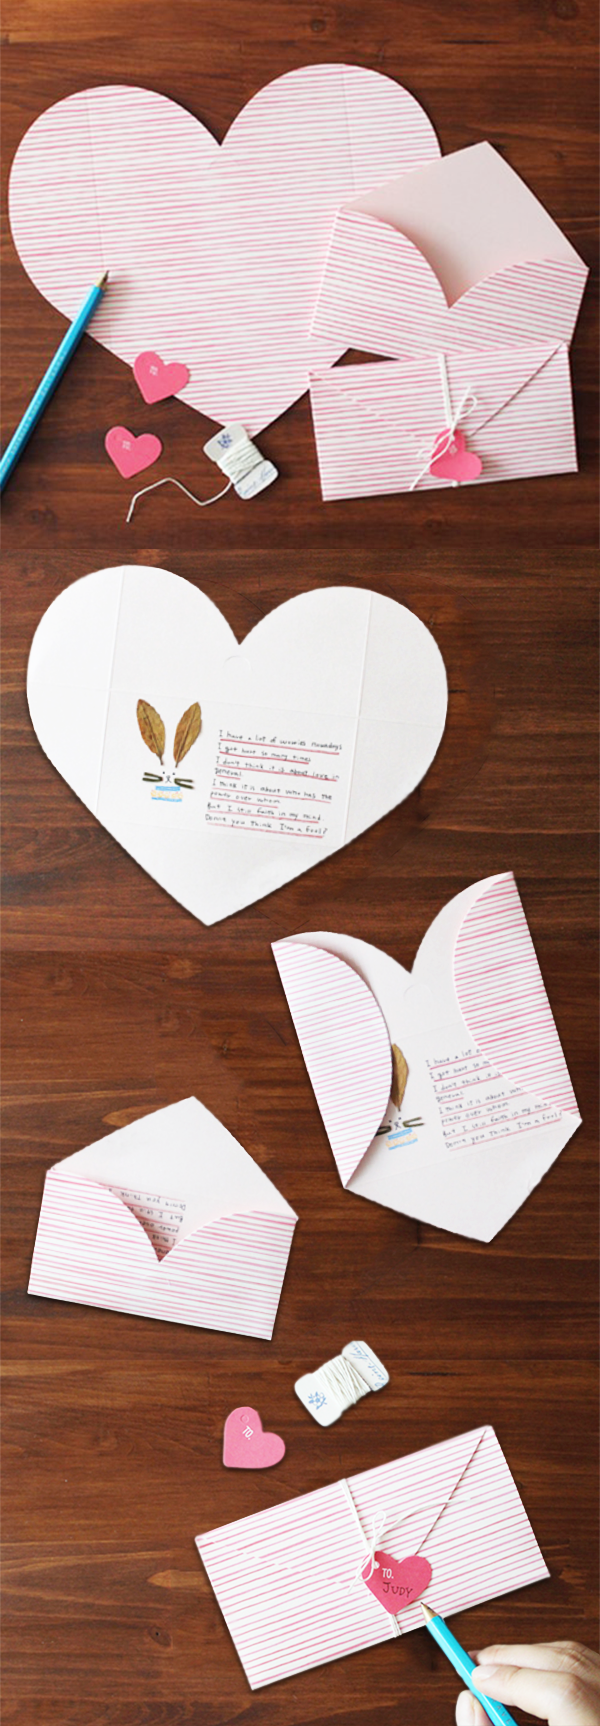 Cute! An envelope and card in one! The Pink Stripe Love Letter is a stationery set that comes with everything you need for 2 letters! Write a lovely message to a special someone on the inside of the heart shaped card then fold it into an envelope and seal it with the gift tag and string! Few things show you care more than a personalized handwritten note. With such a unique card, your friend is sure to feel loved and appreciated! Give the gift of a one-of-a-kind handwritten note! Check it…